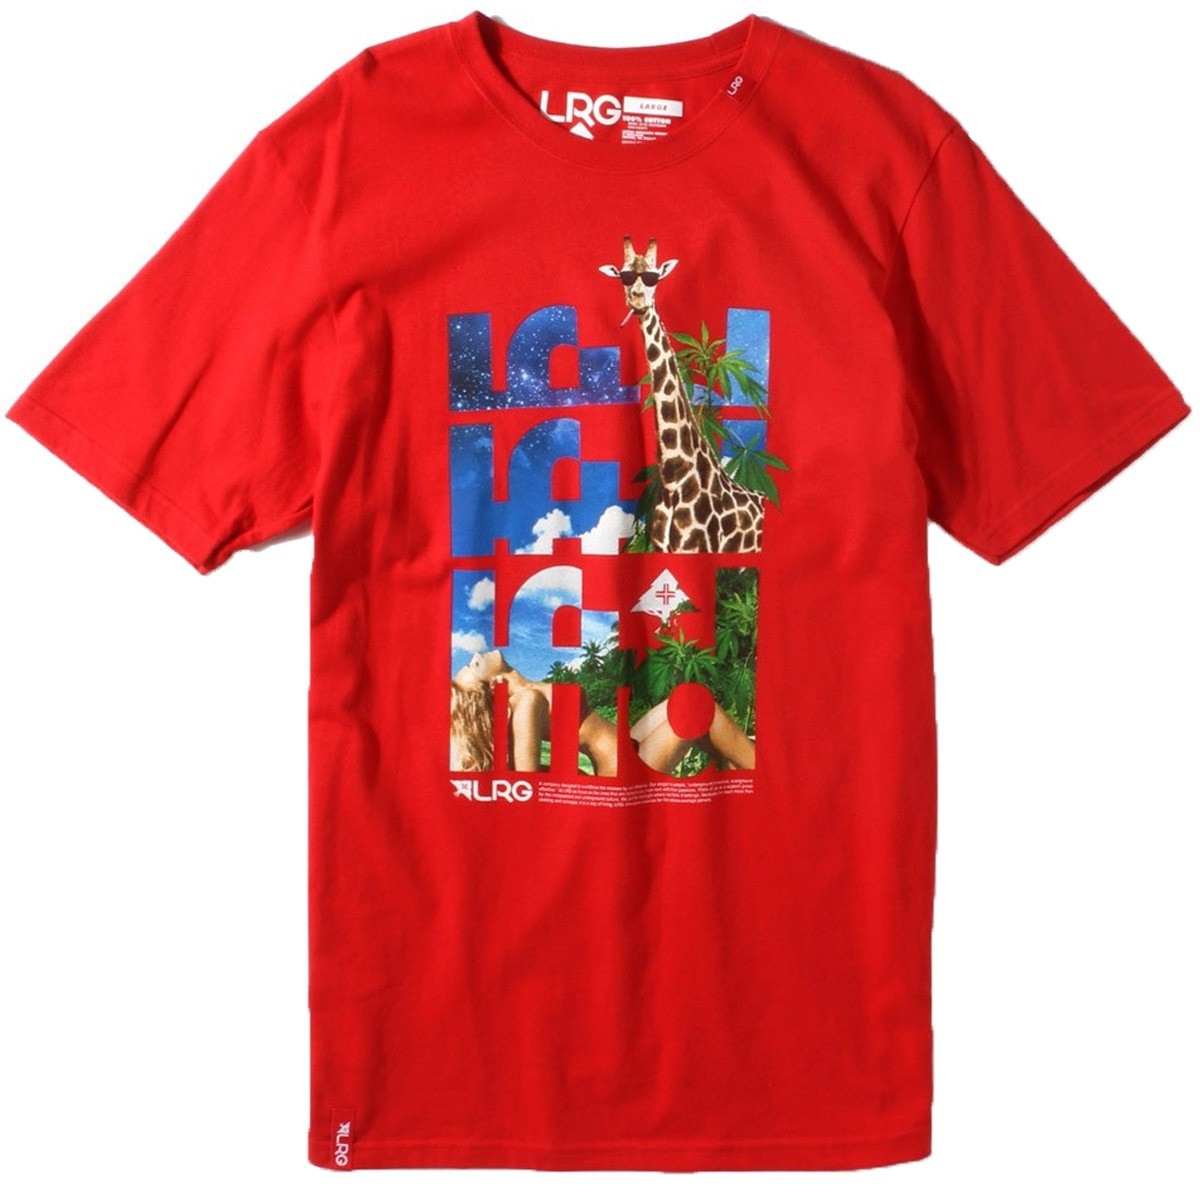 LRG Staycation T-Shirt - Red